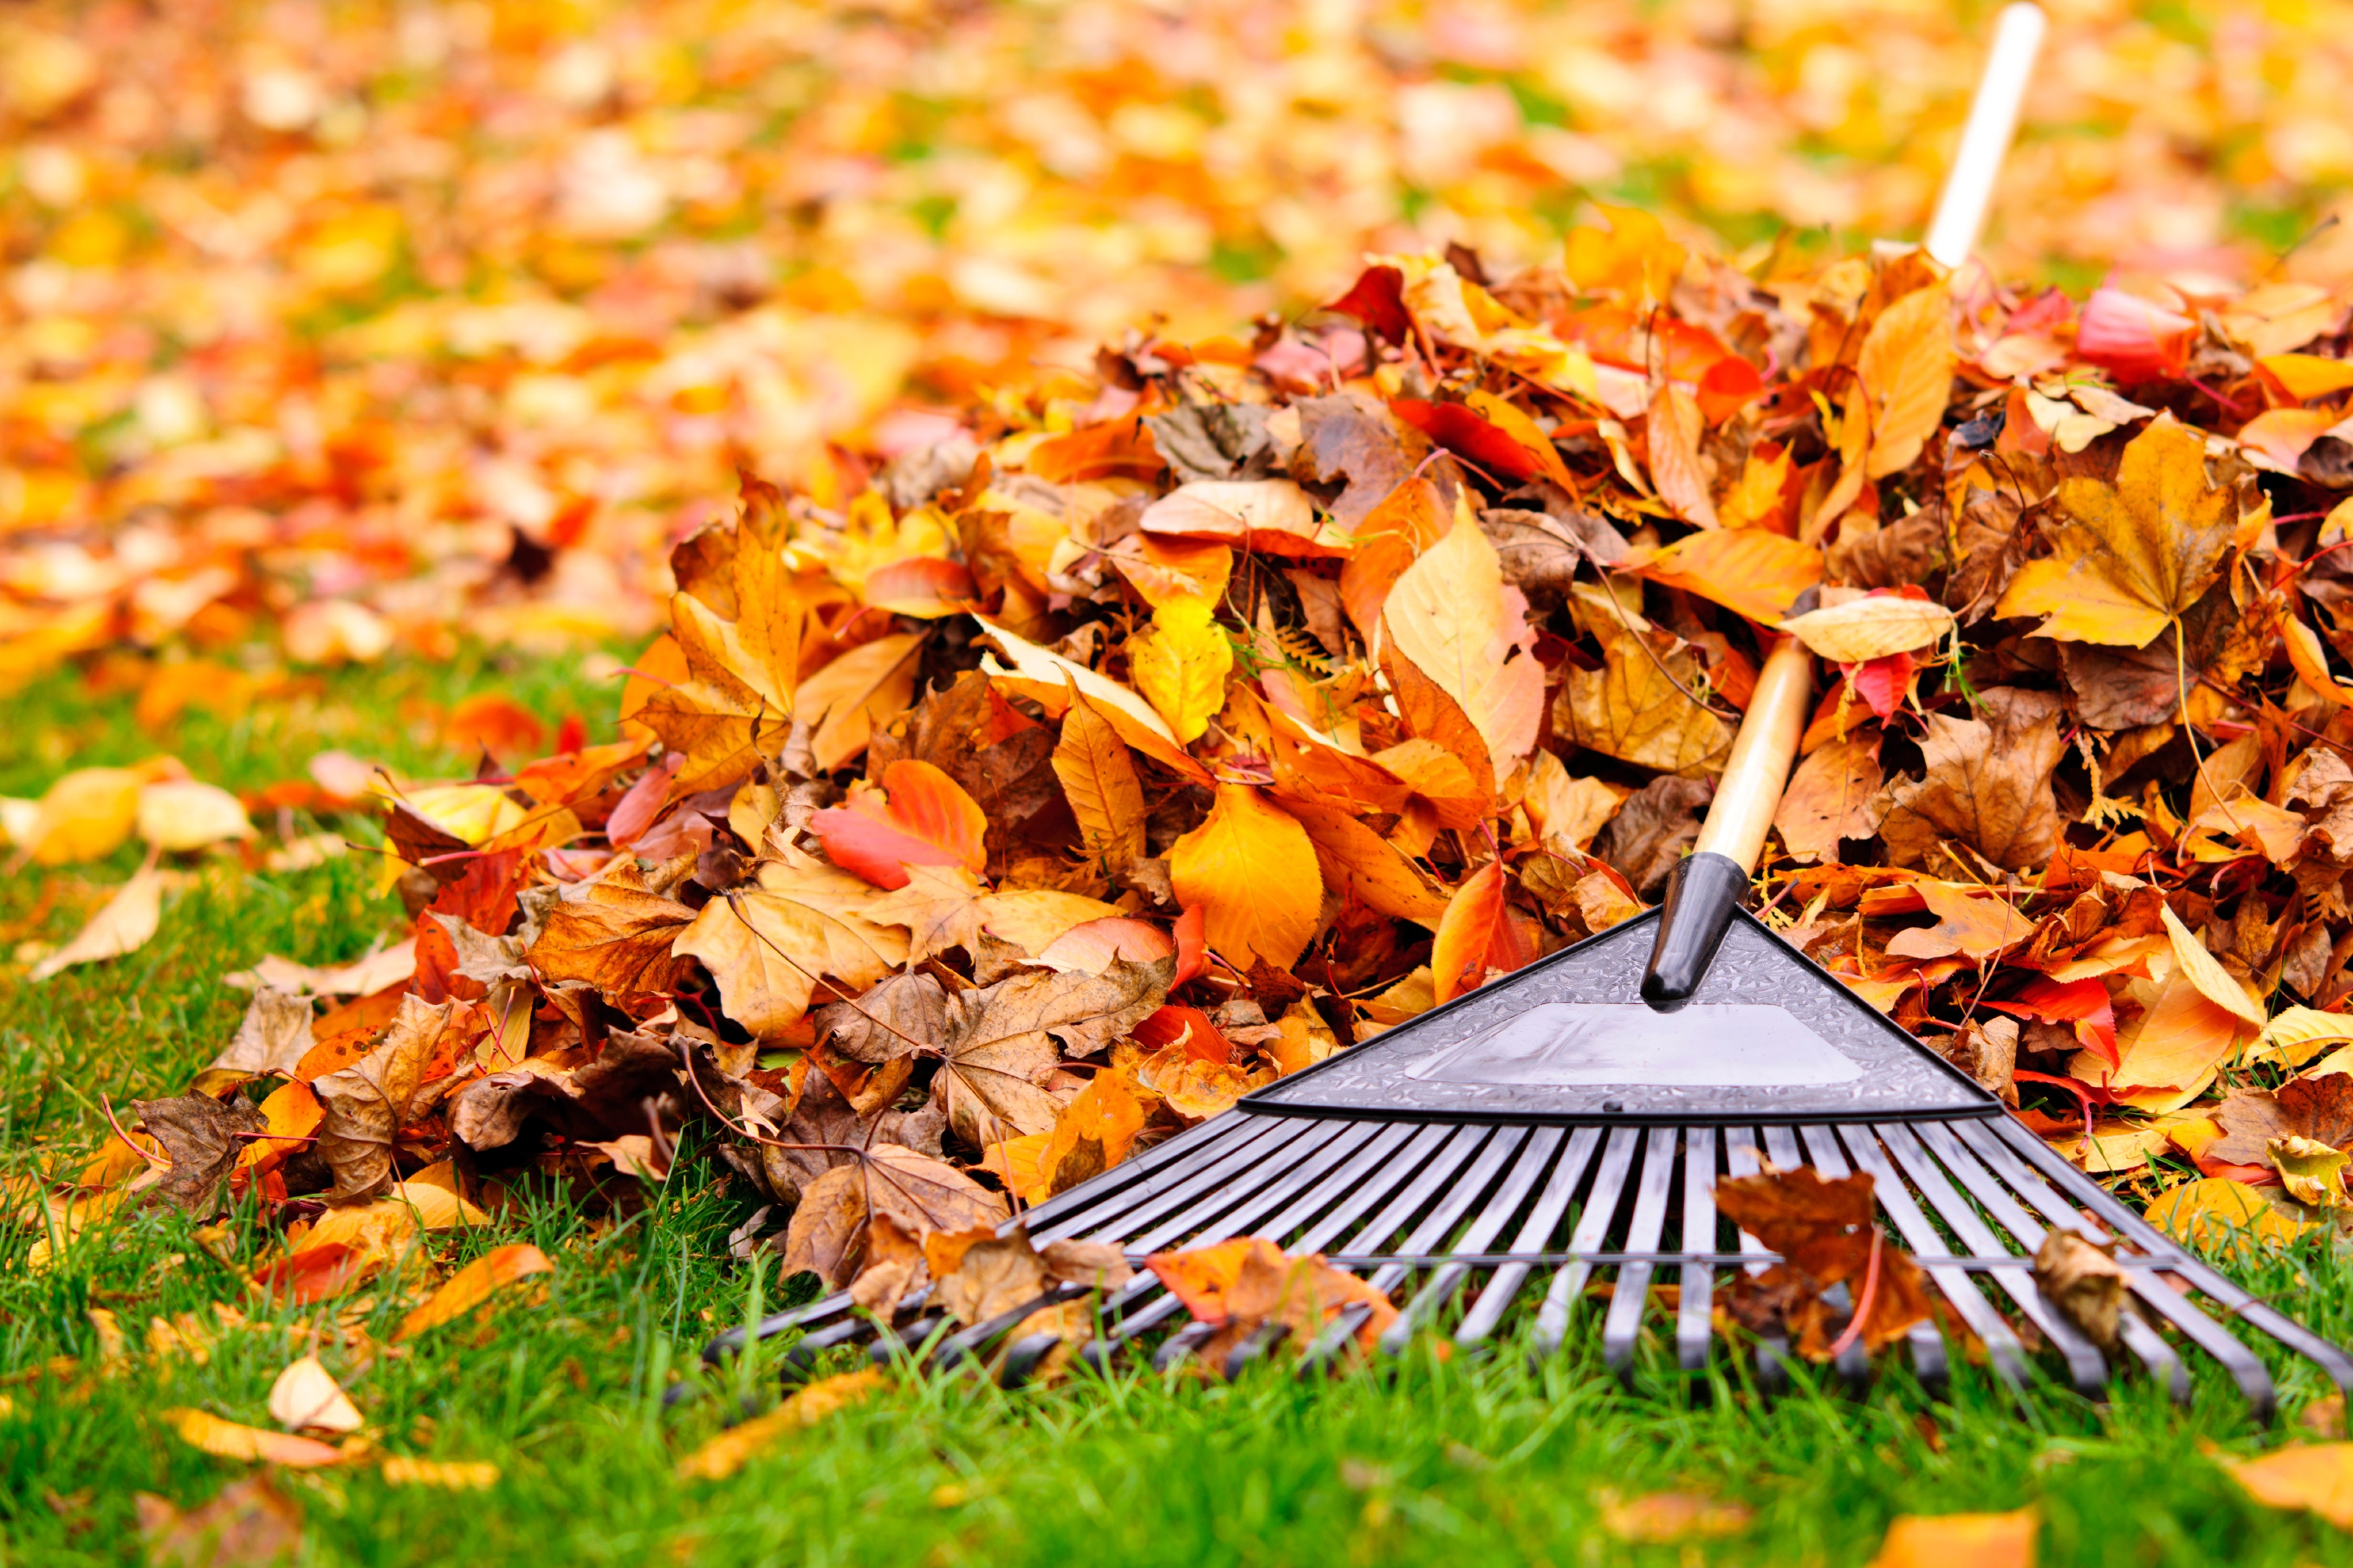 Raking Leaves Off Your Lawn in Fall - Featured Image